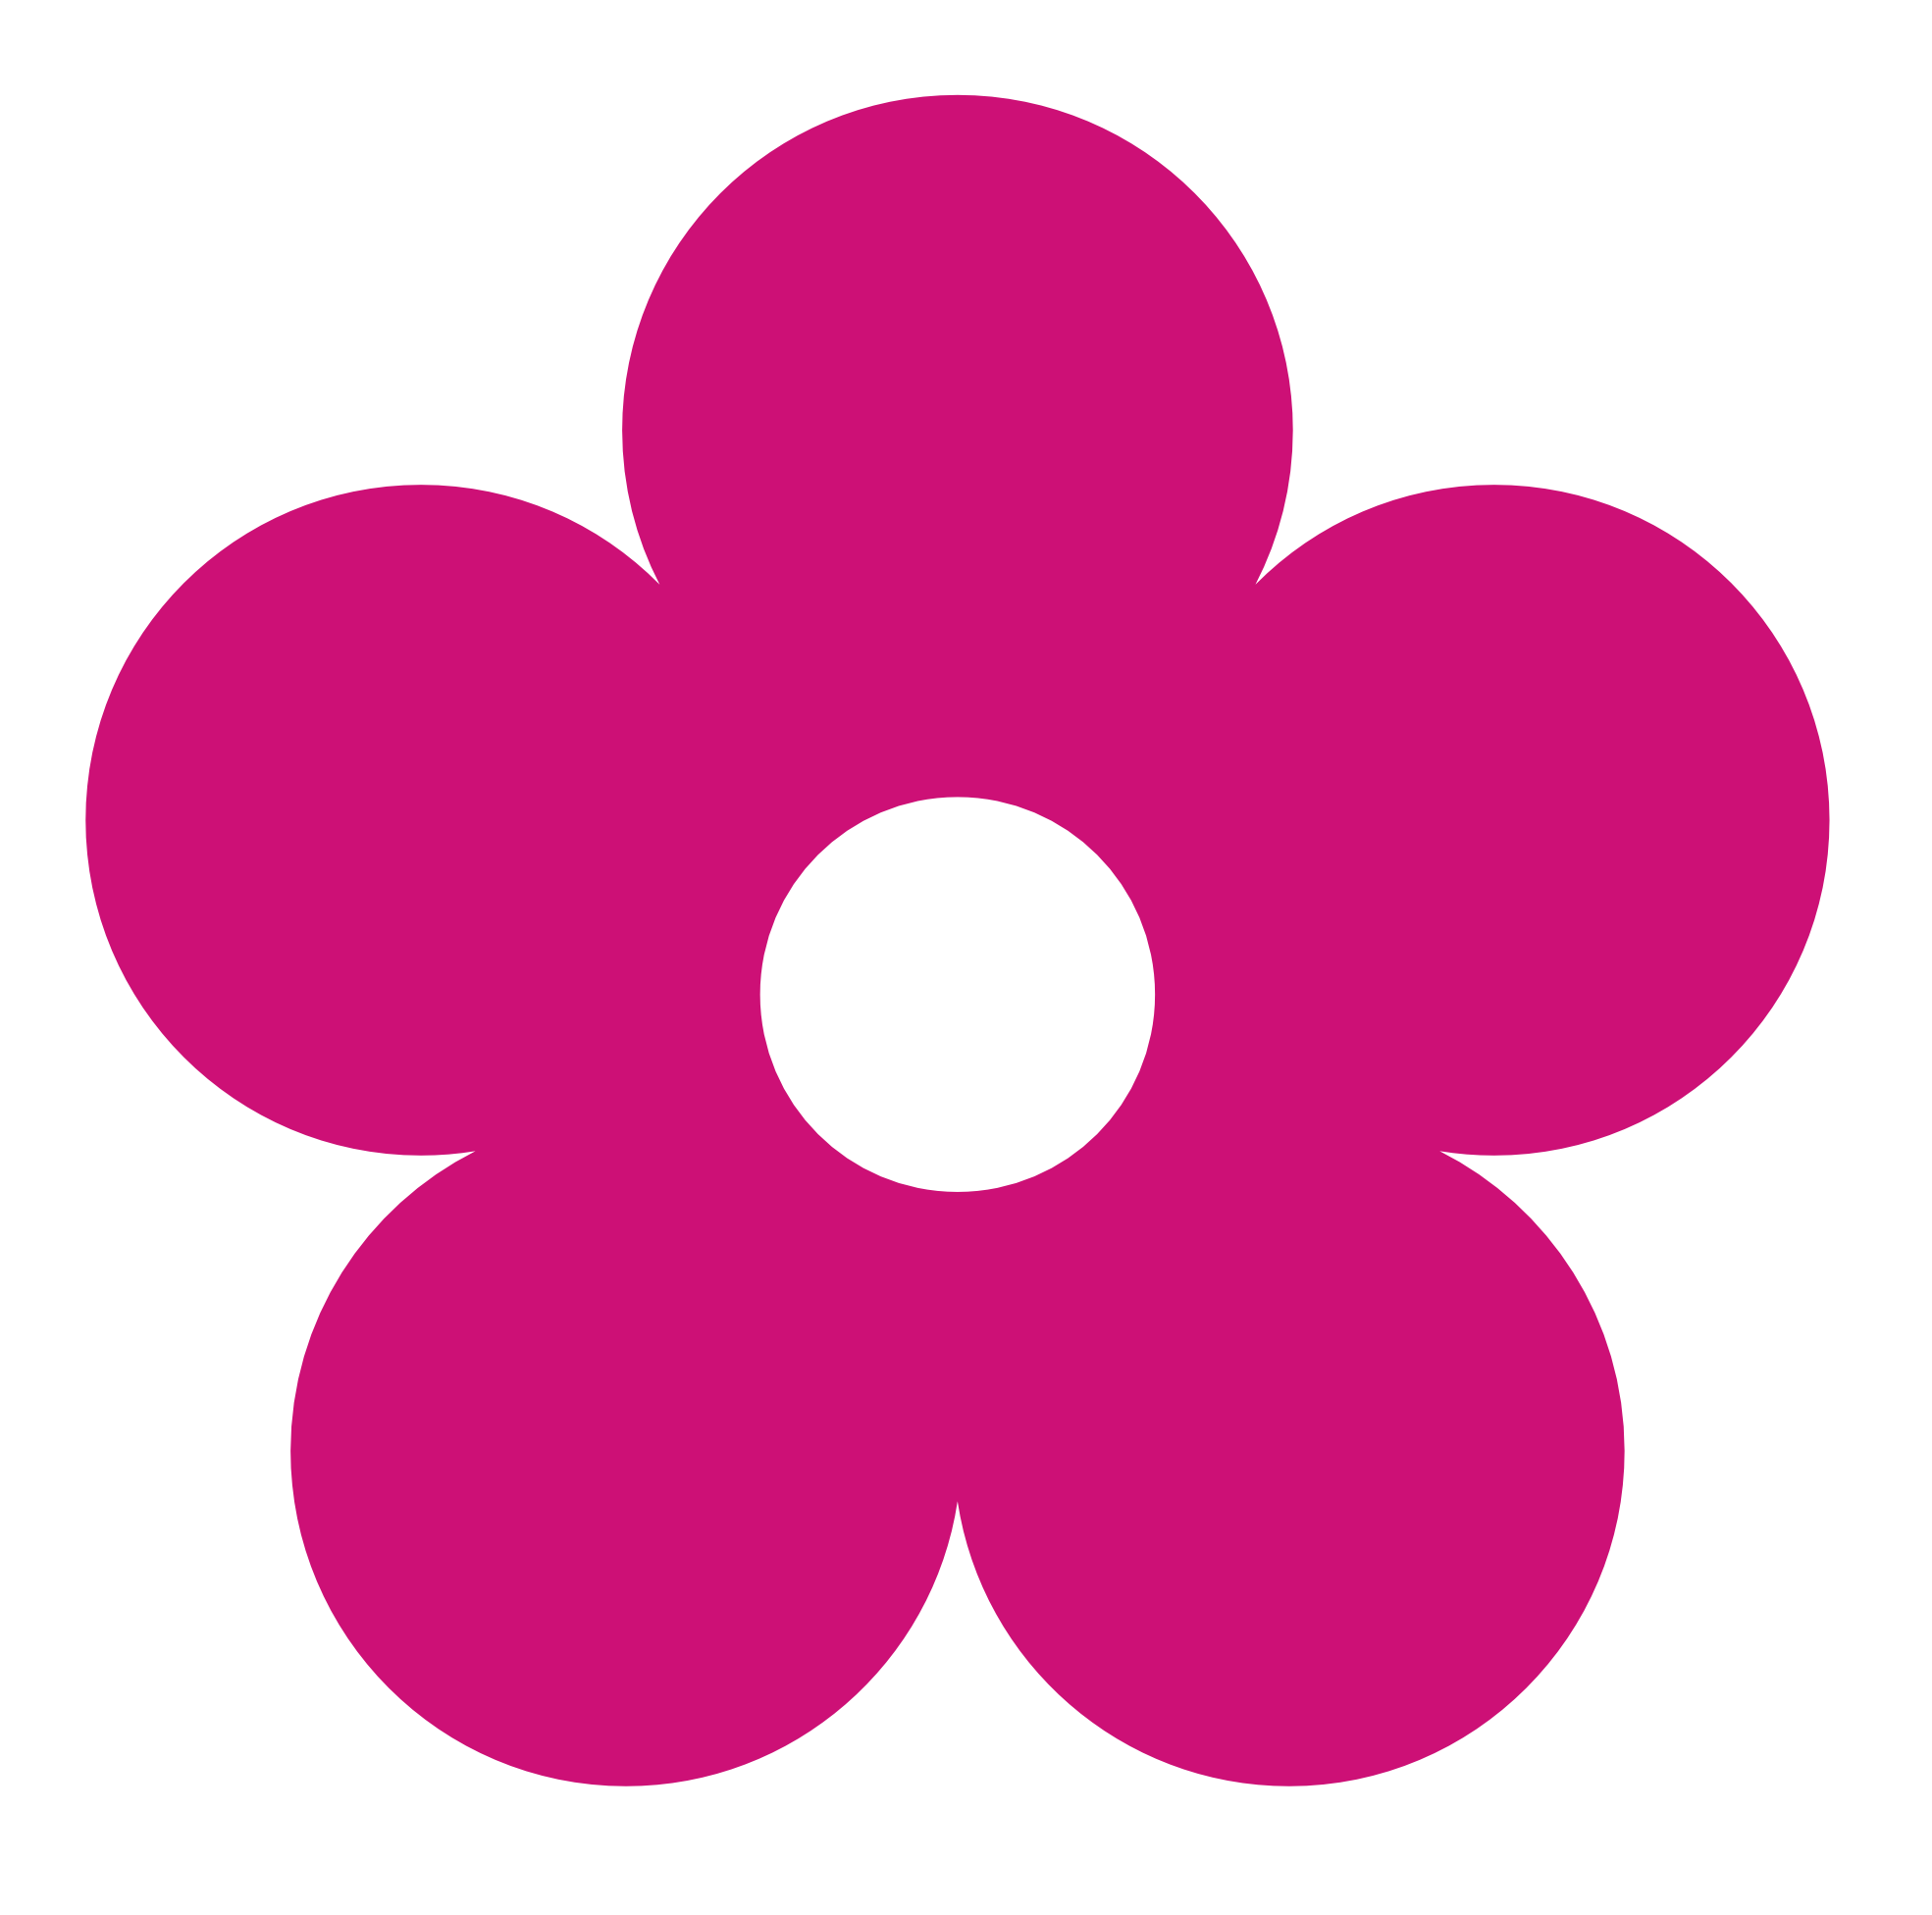 Medal clipart pink. Image flower clipartpink clip